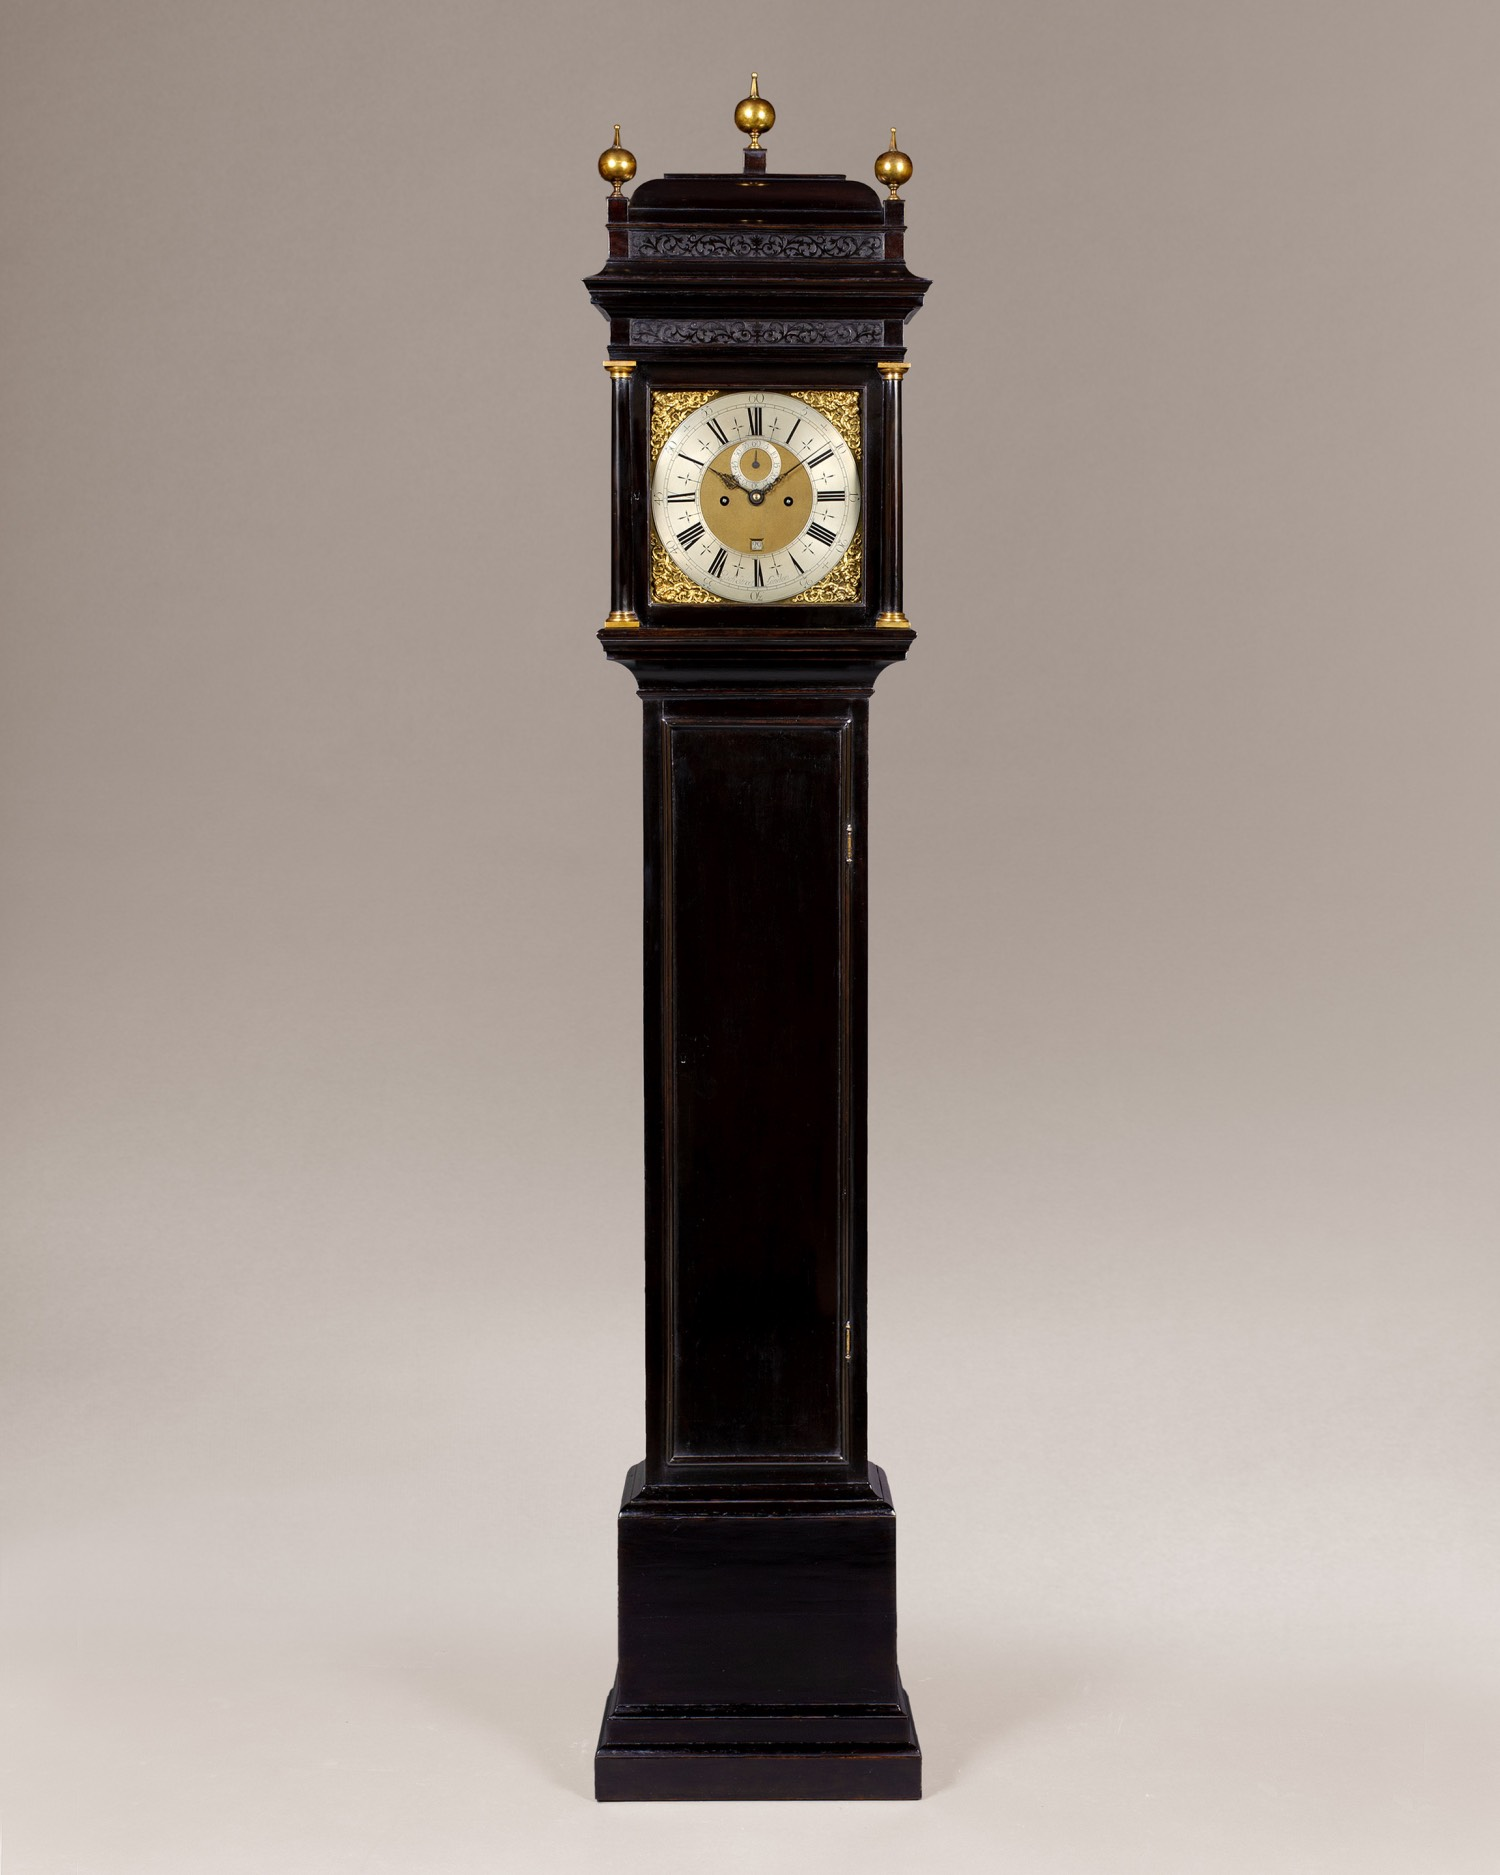 RICHARD STREET, QUEEN ANNE EBONISED LONGCASE CLOCK